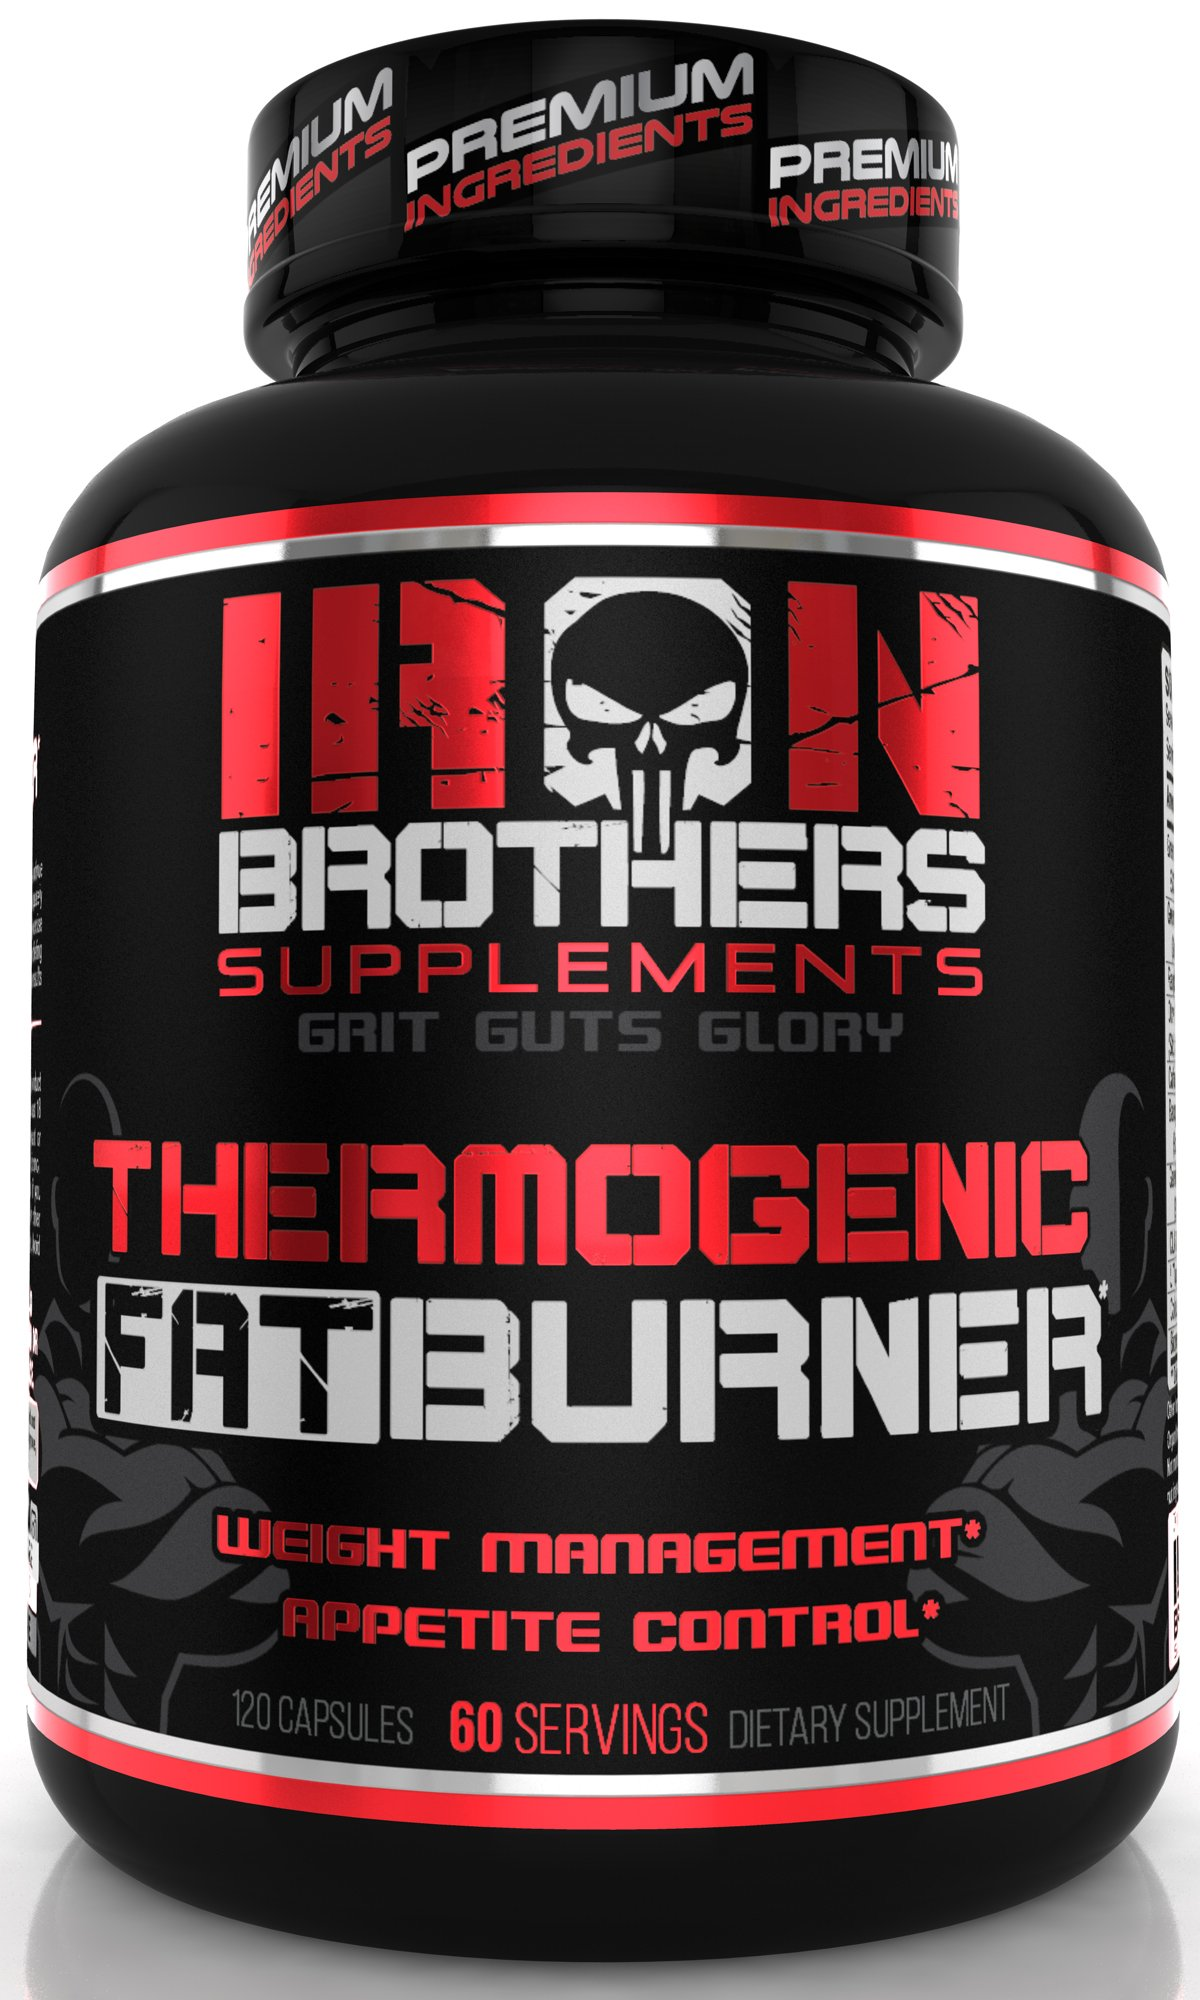 Thermogenic Fat Burners for Men - Weight Loss Women - Appetite Suppressant with Green Tea Extract - Belly Fat Burner- Lean Burn Support - Garcinia Cambogia - 30 Servings - 120 Veggie Capsules by Iron Brothers Supplements